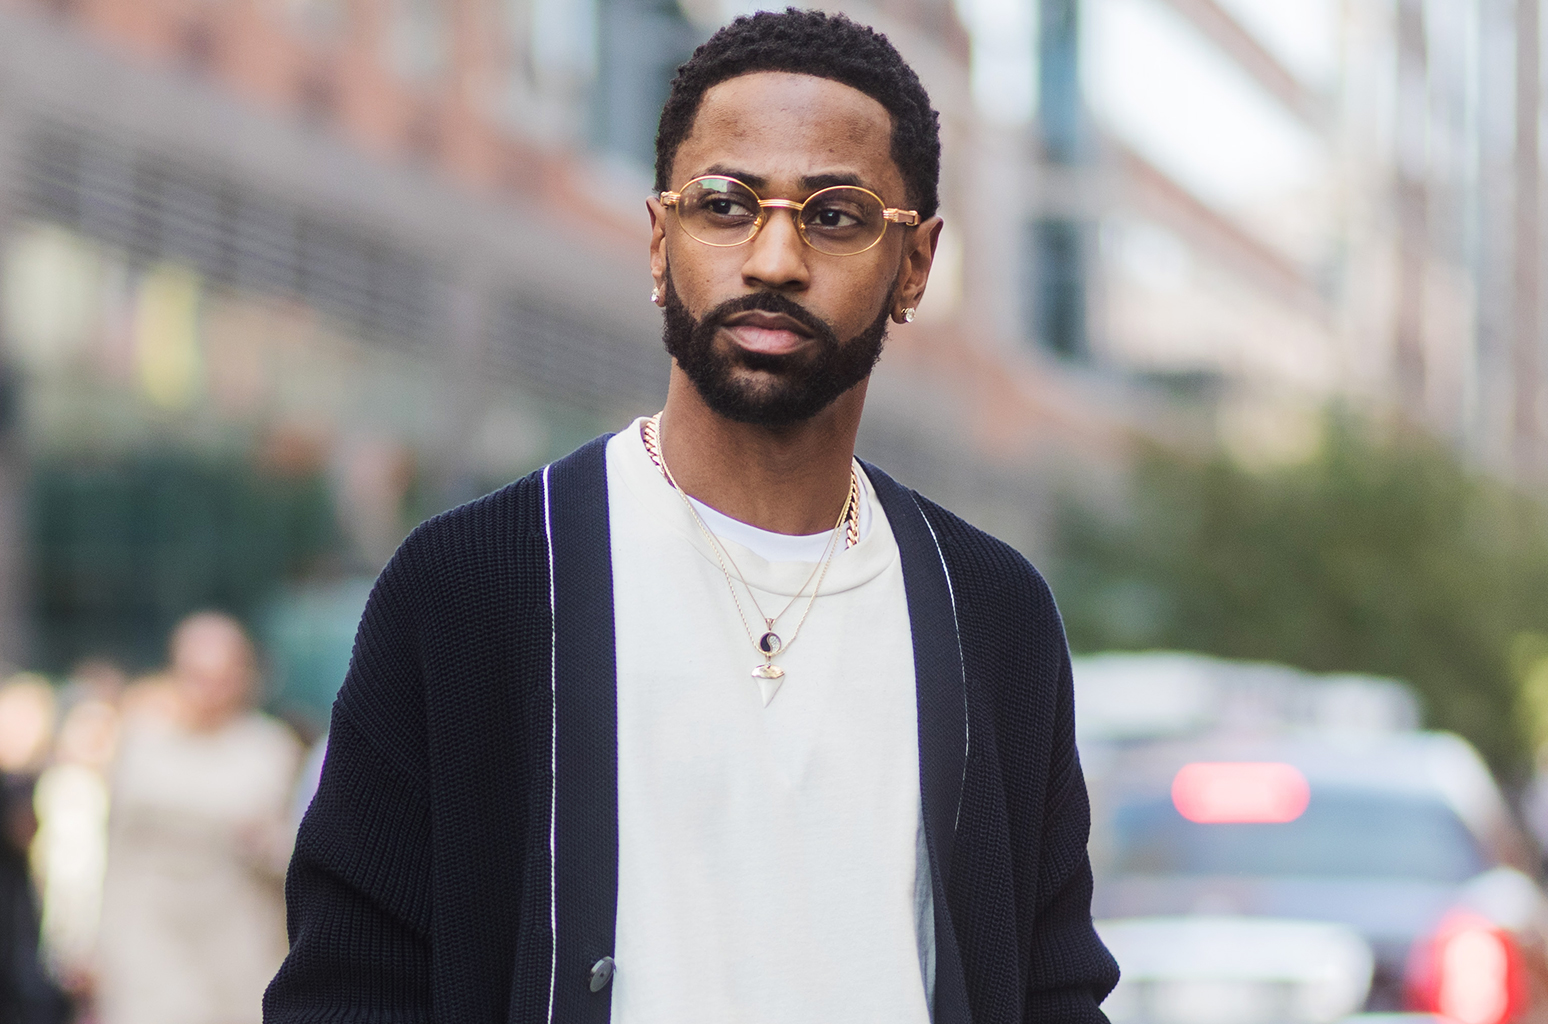 Detroit's Big Sean opens up about therapy, struggles with anxiety, depression